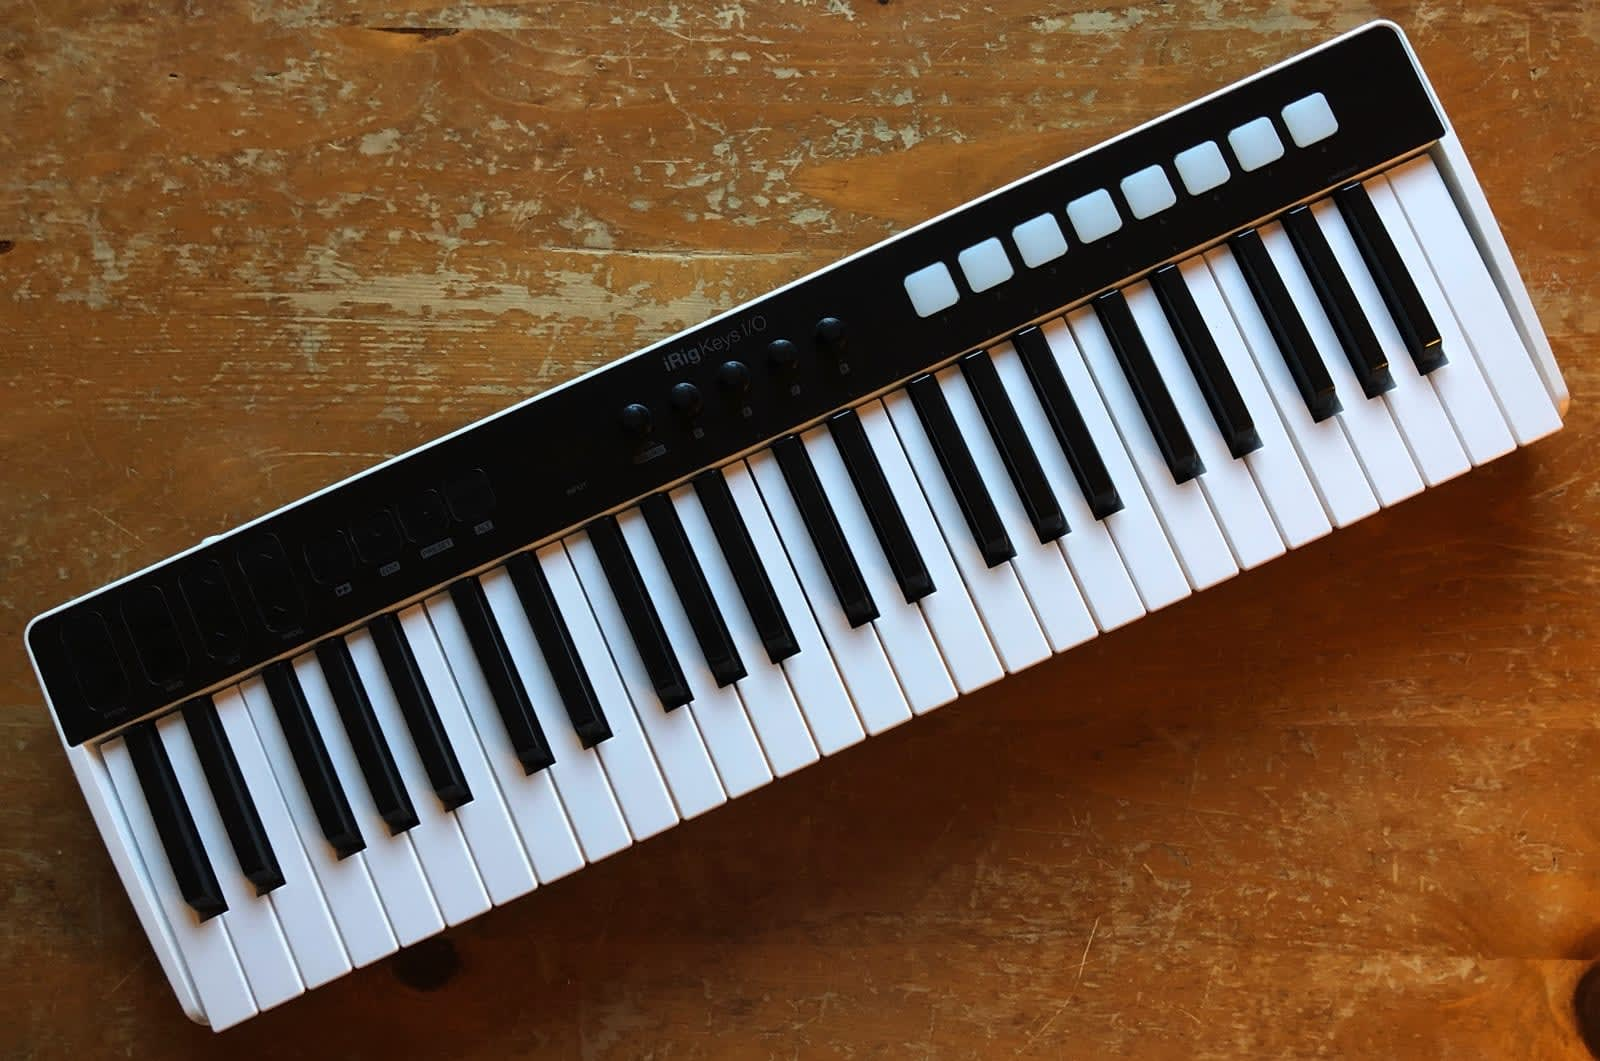 The iRig Keys I/O makes it easy to streamline your studio